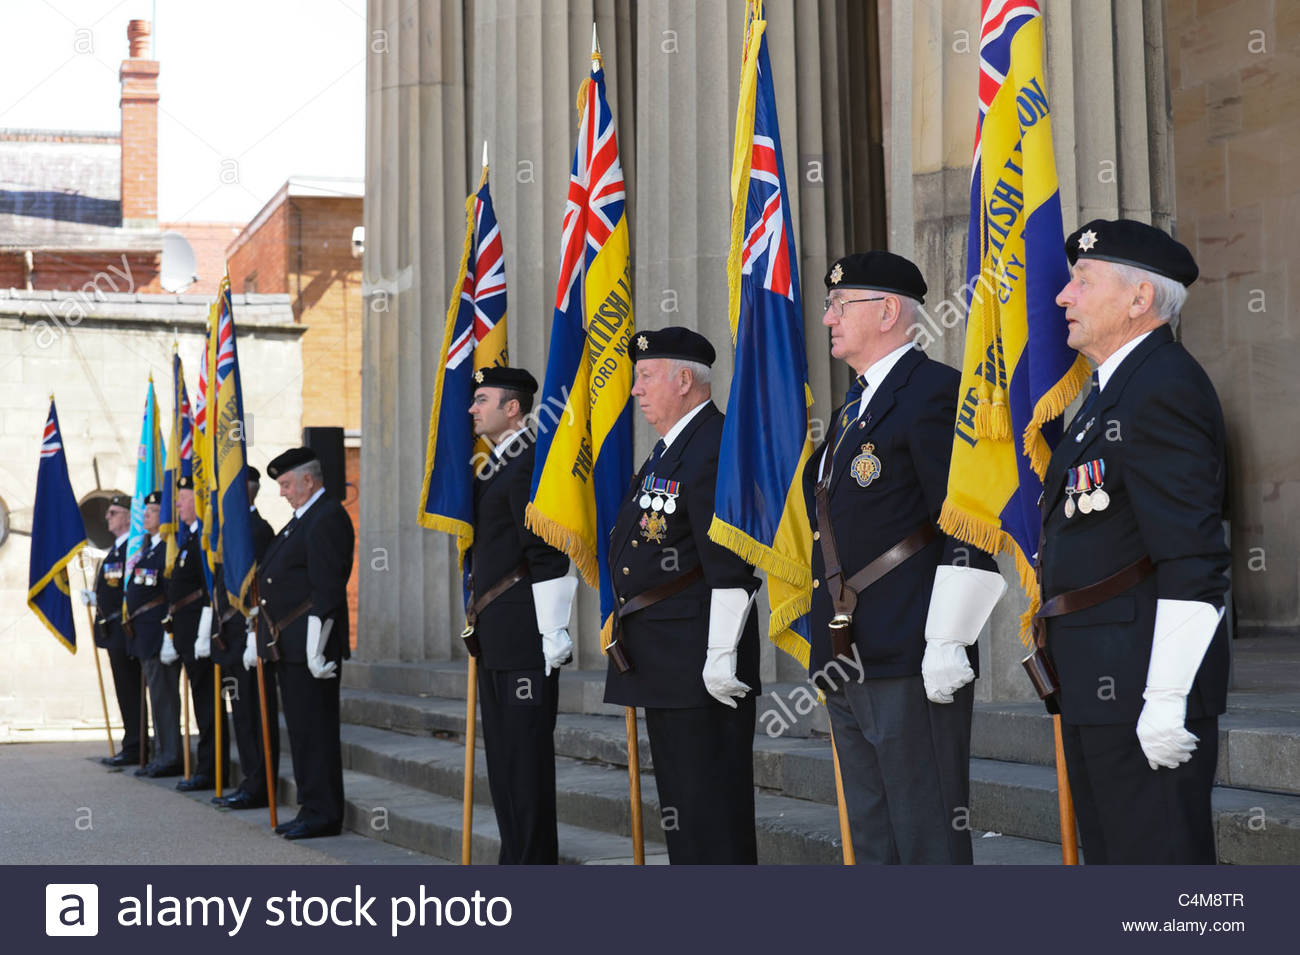 Royal British Legion ex-servicemen on parade outside the Shire hall, Hereford City, UK. Old soldiers wearing uniforms - Stock Image